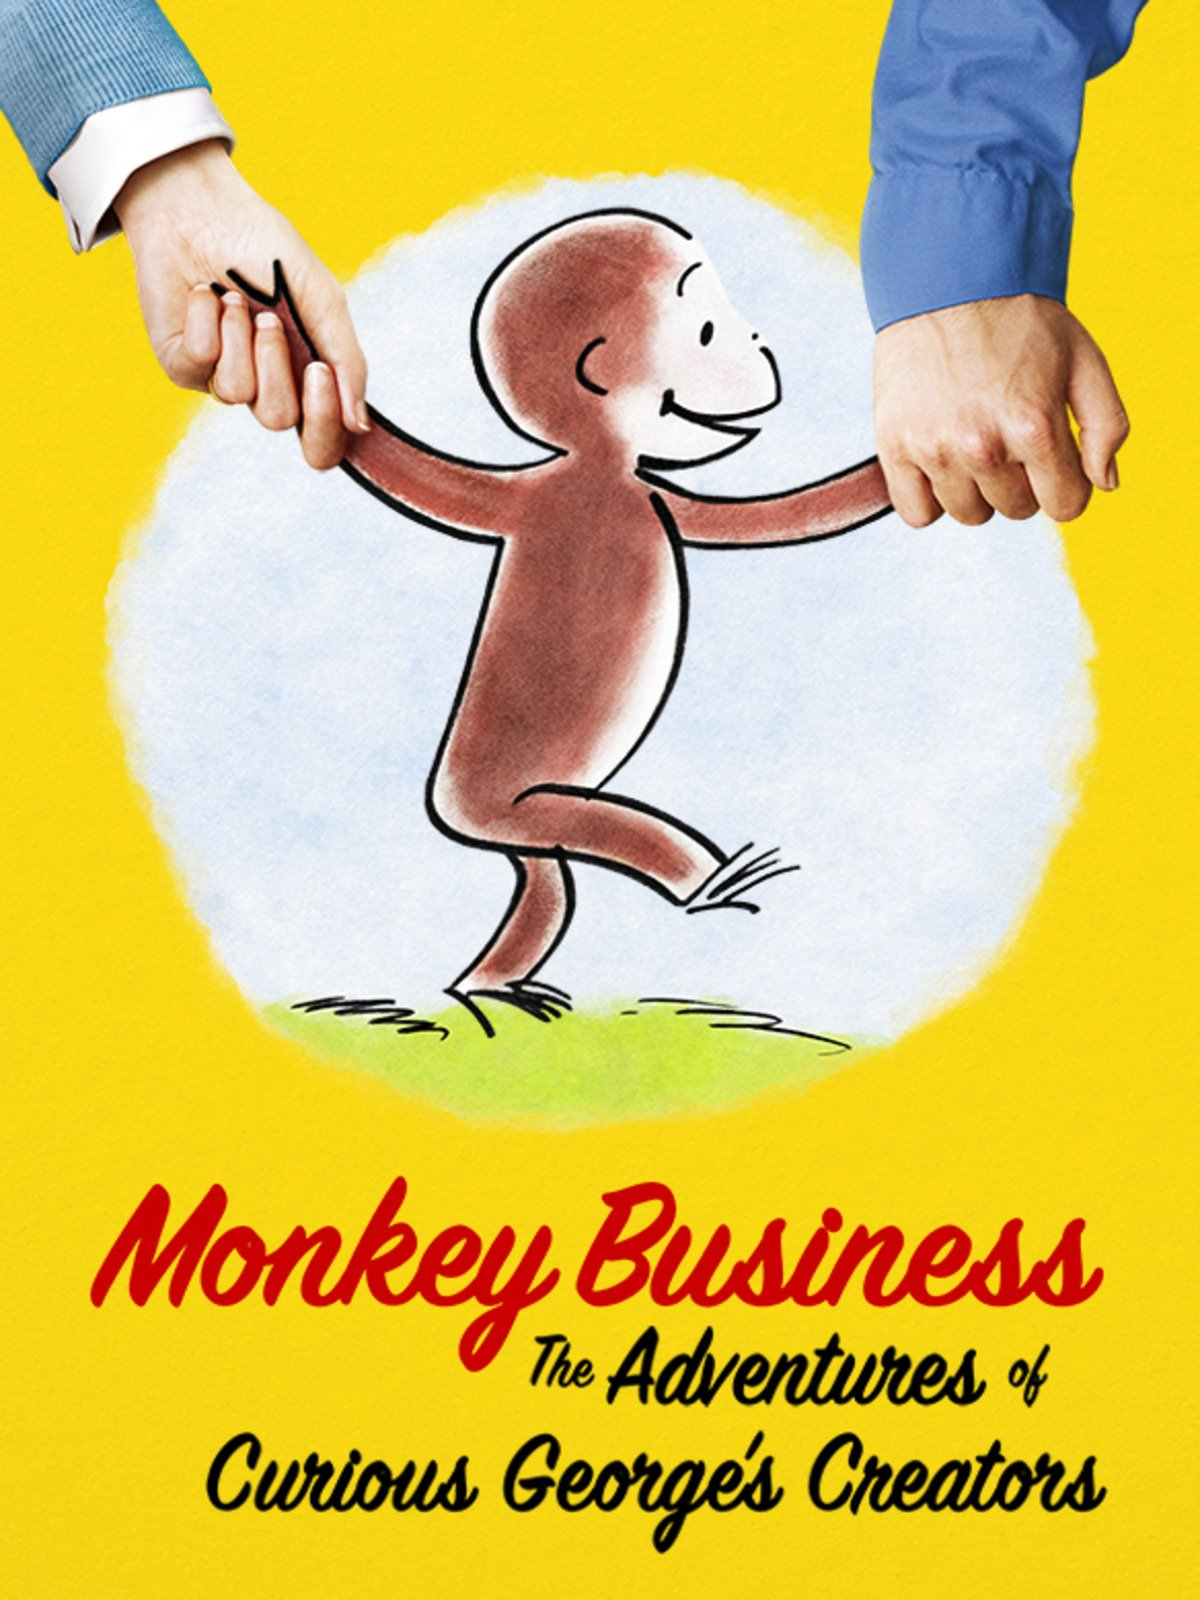 Monkey Business: The Adventures of Curious George's Creators on Amazon Prime Instant Video UK